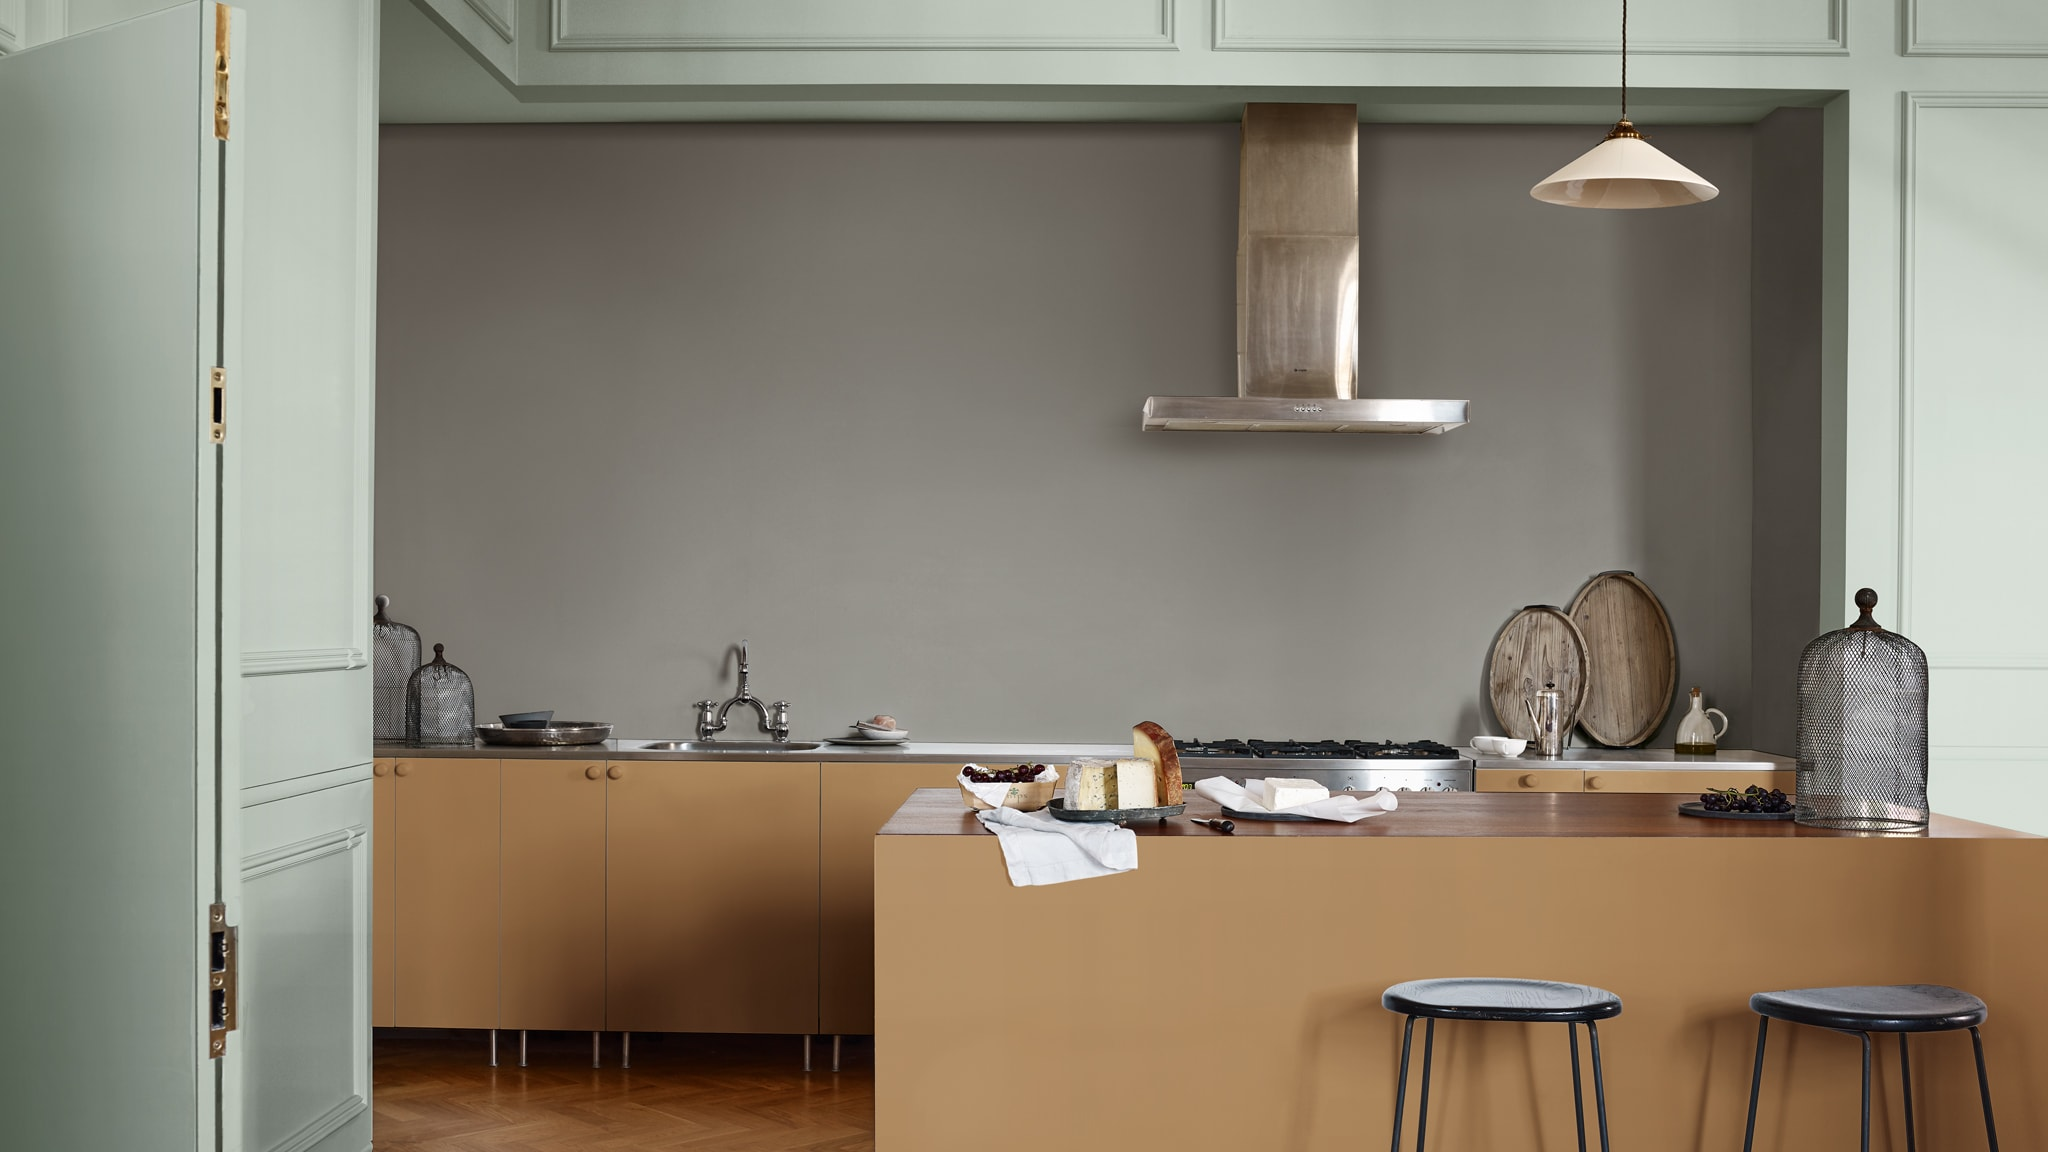 Deco-Paints-Colour-Futures-Colour-of-the-Year-2019-A-place-to-dream-Kitchen-Inspiration-27